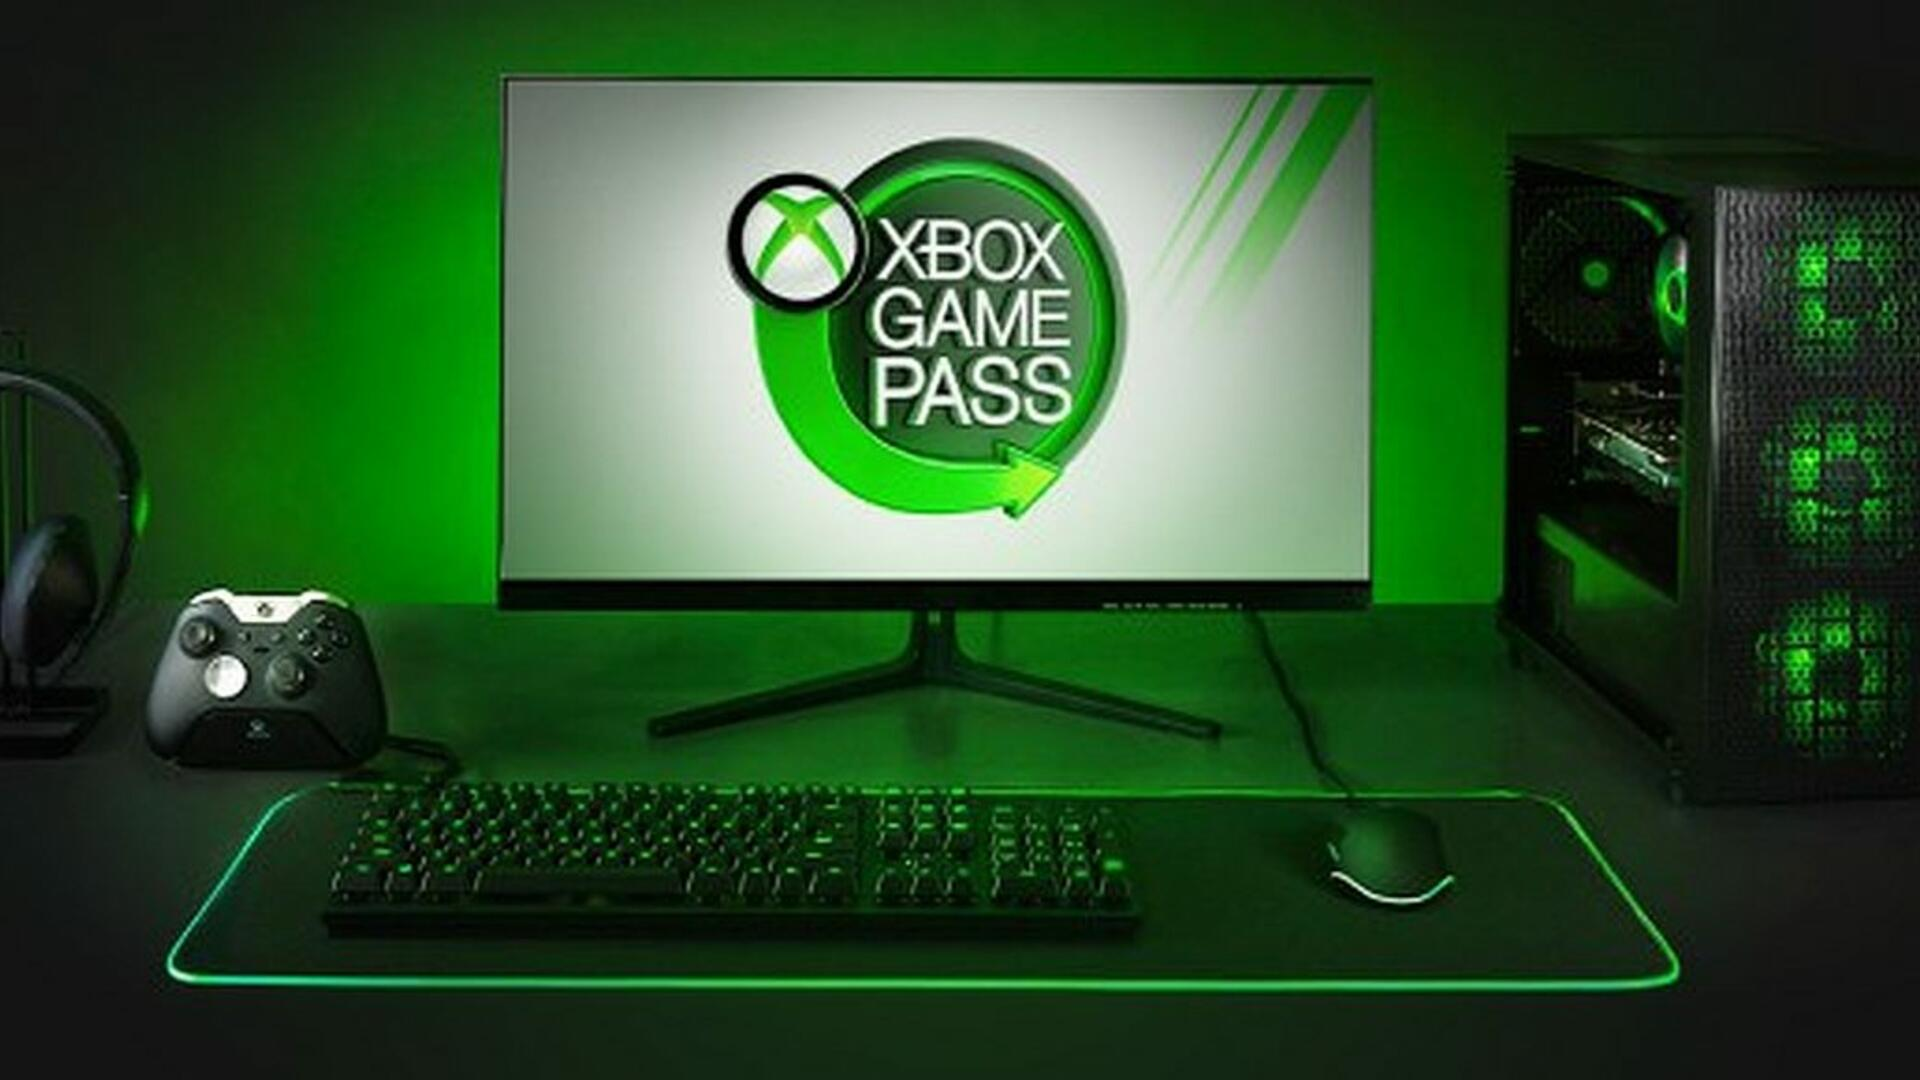 Xbox Game Pass Ultimate Bundles Xbox Live Gold and Game Pass for Console and PC for $15